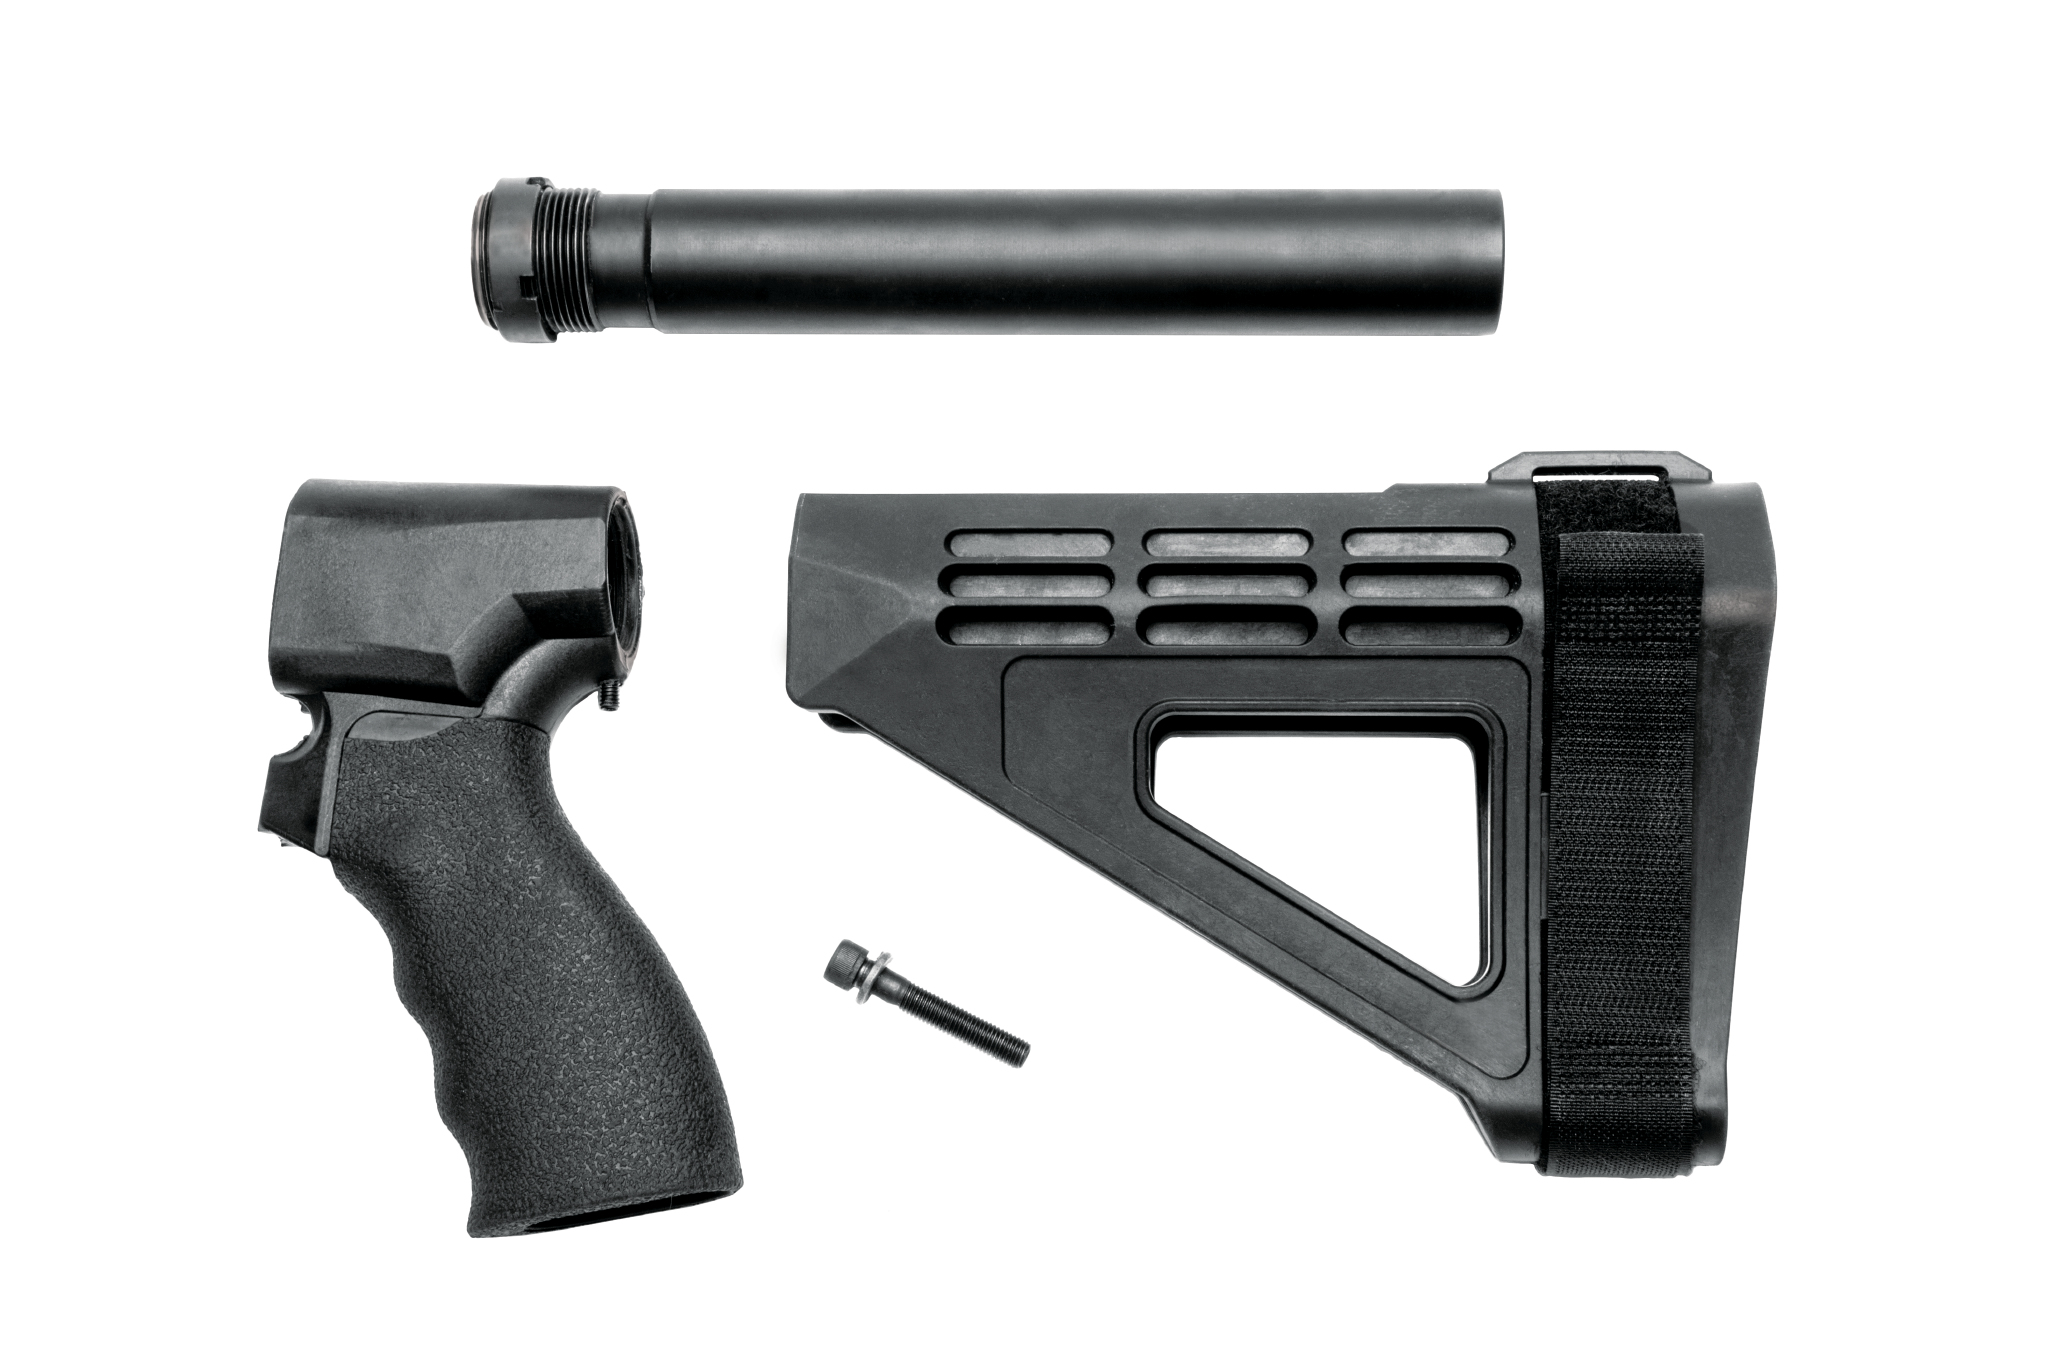 SB Tactical 590-SBM4 Stabilizing Brace Kit for Mossberg 590 Shockwave